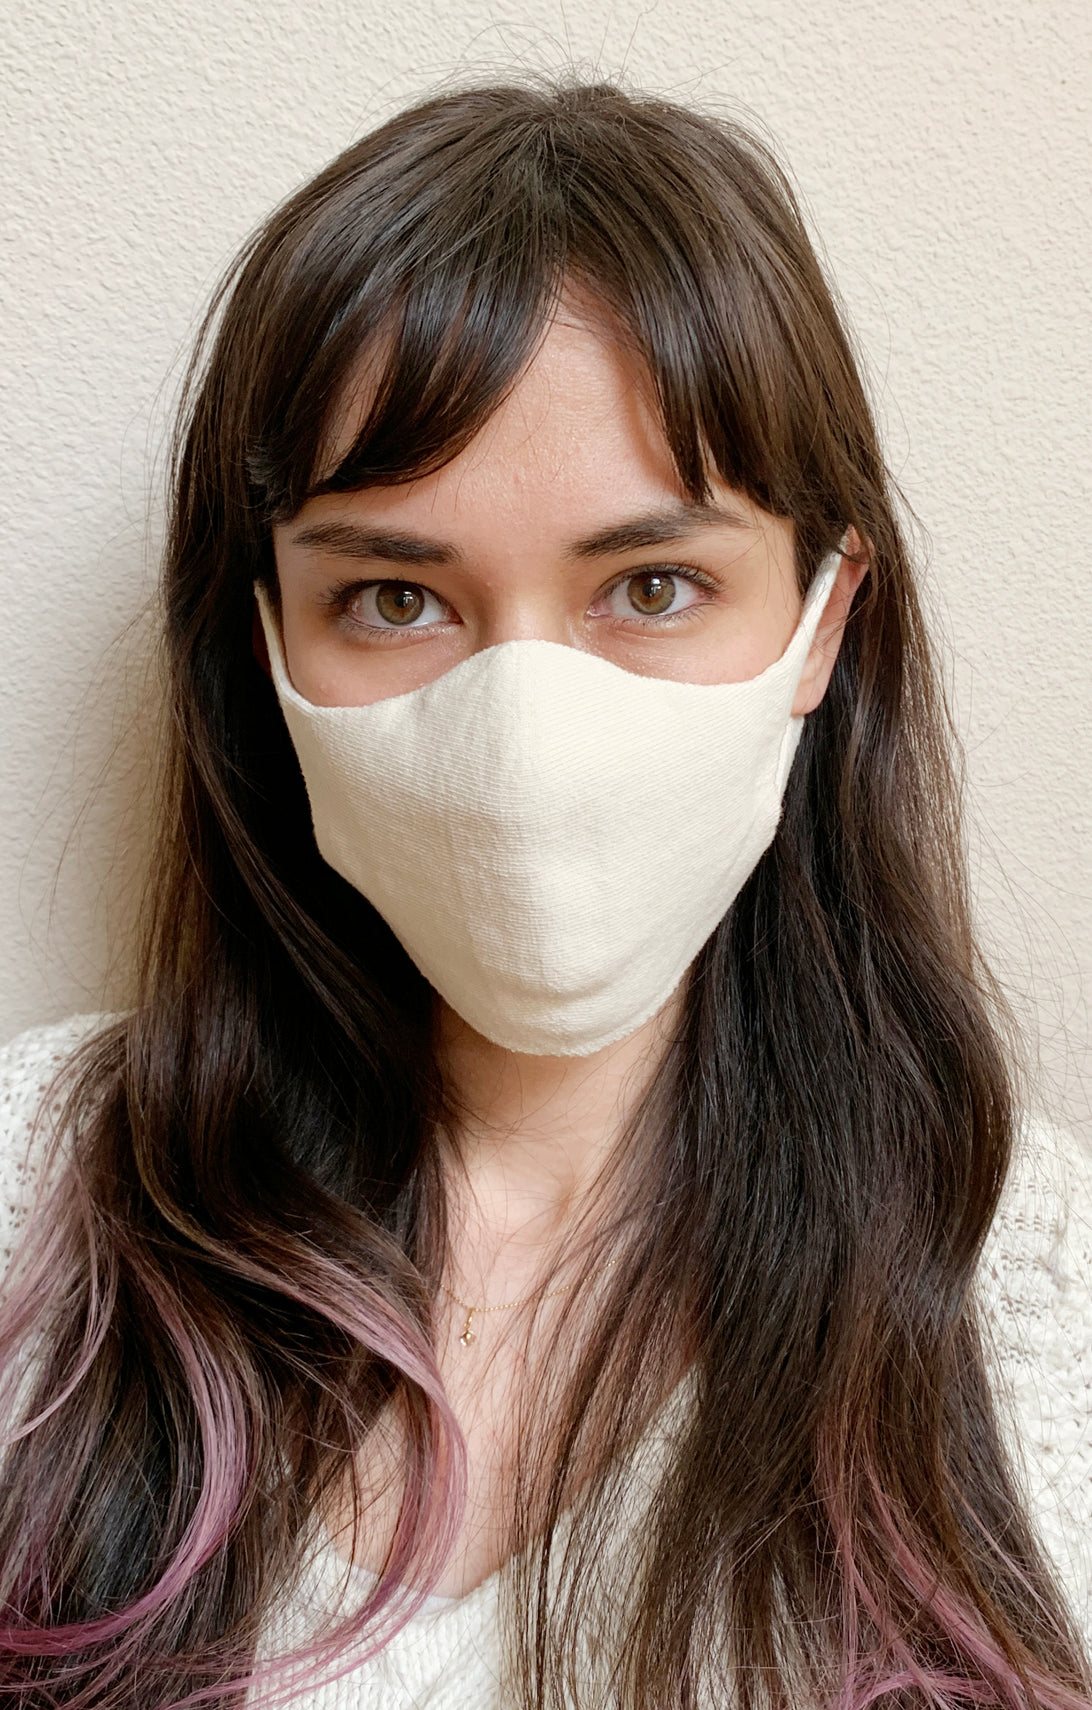 The Japanese Seamless Comfort Face Mask (Non-Medical Grade)